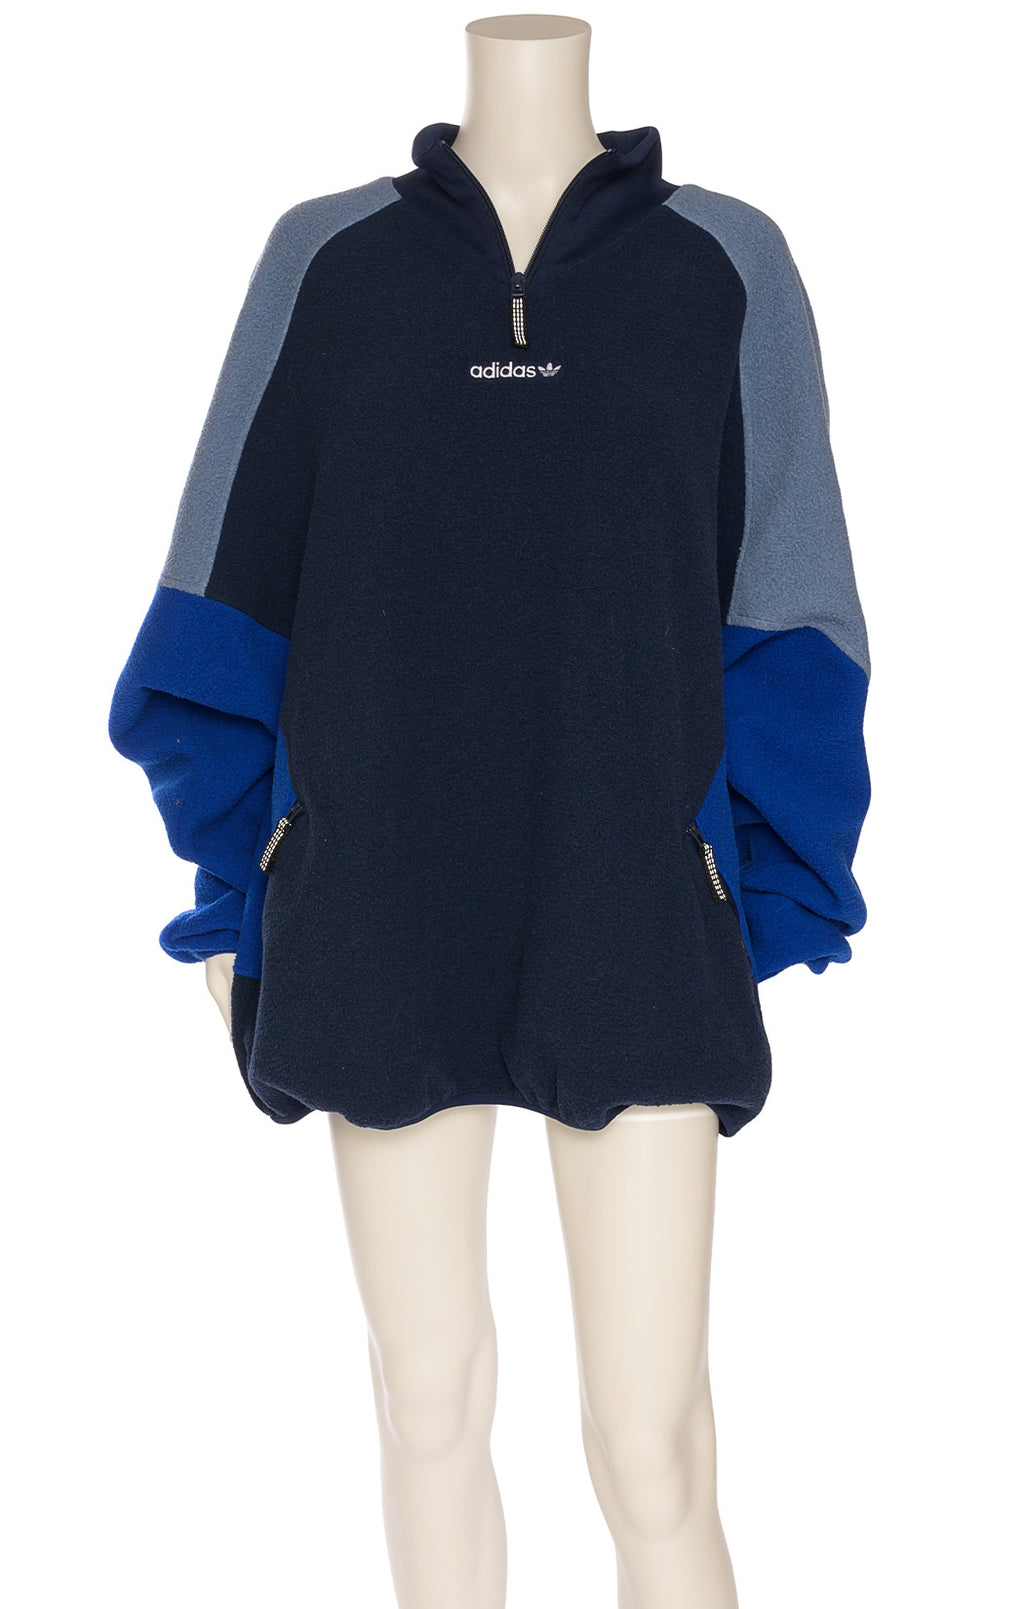 Multi-colored blue pullover polar jacket with shirt front top zipper and front zippered pockets